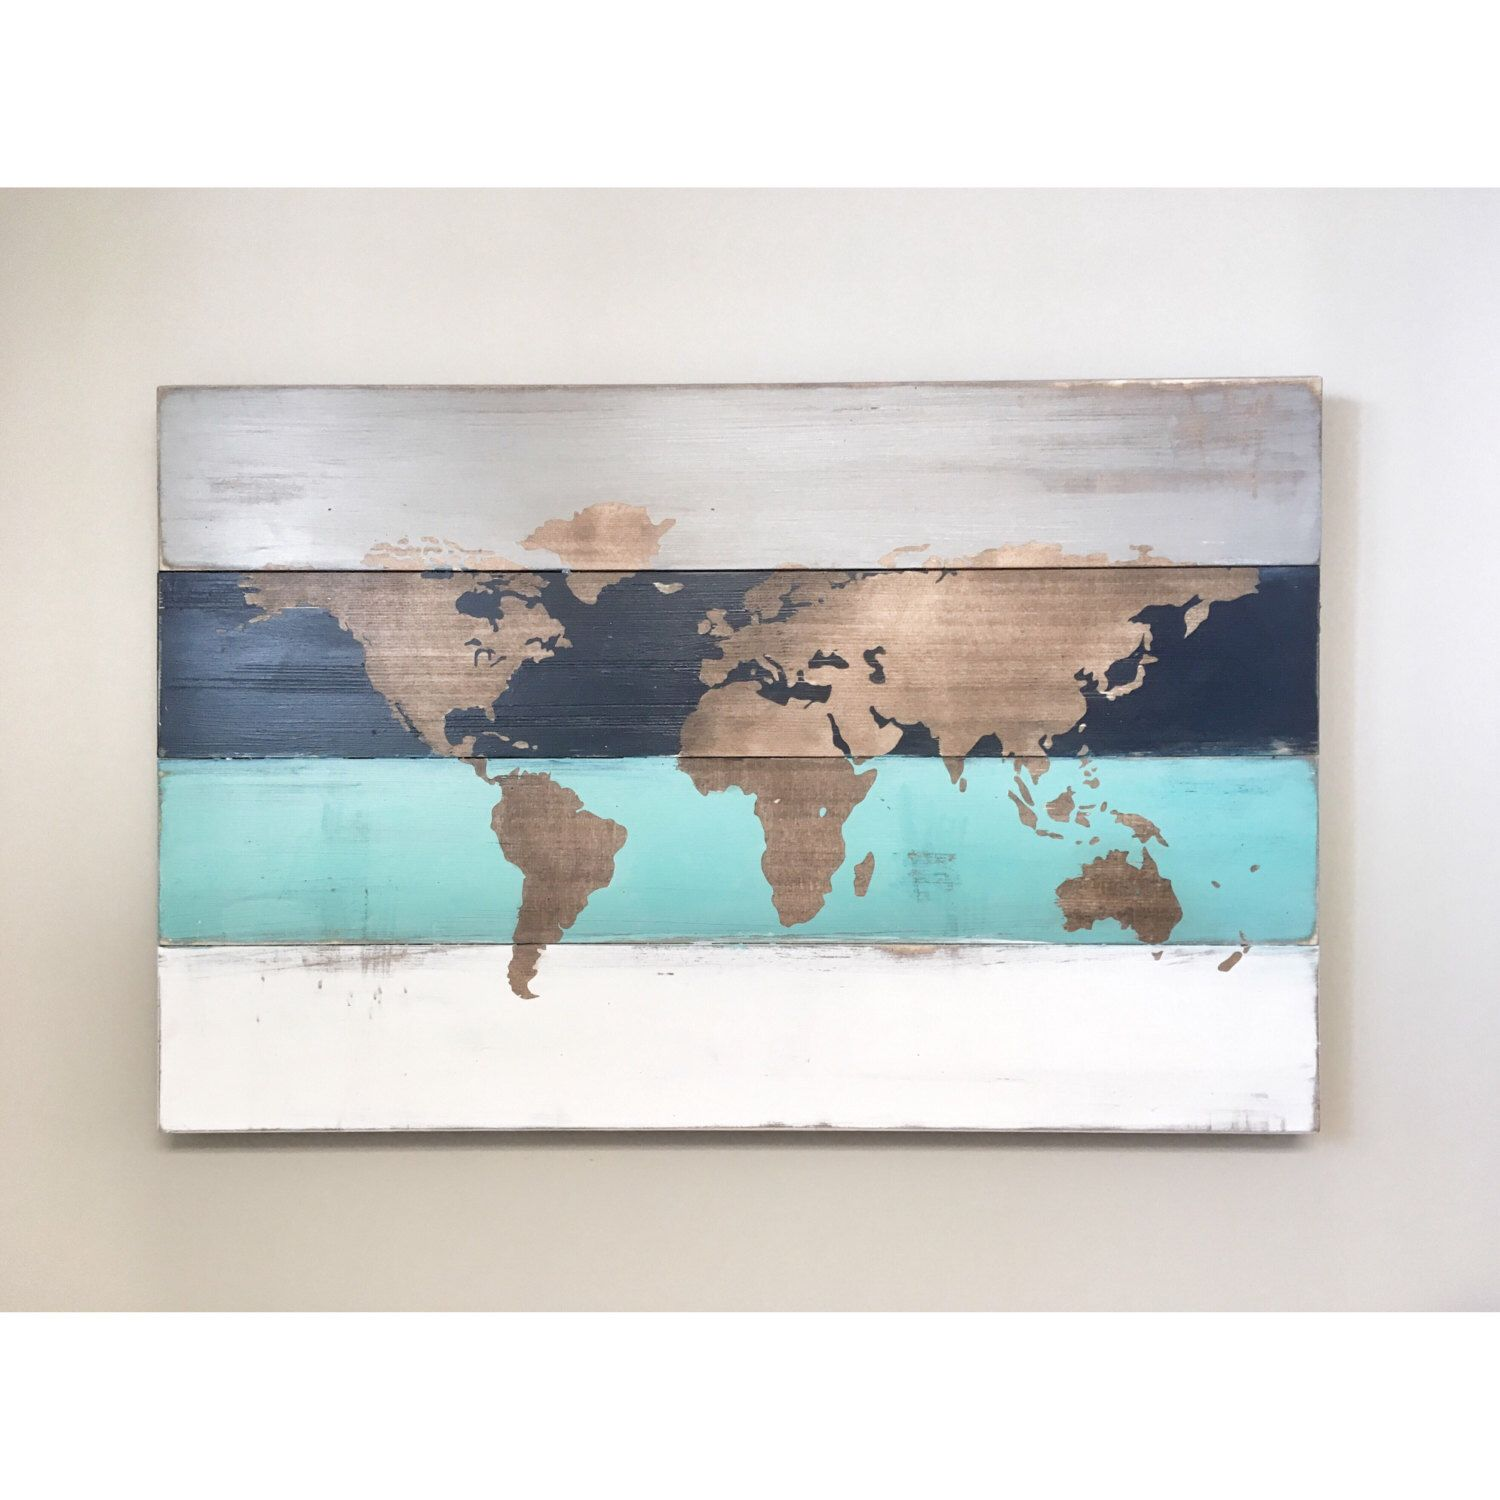 Rustic wood world map rustic decor farmhouse decor rustic nursery a personal favorite from my etsy shop httpsetsy calisting490013048rustic wood world map rustic decor gumiabroncs Images